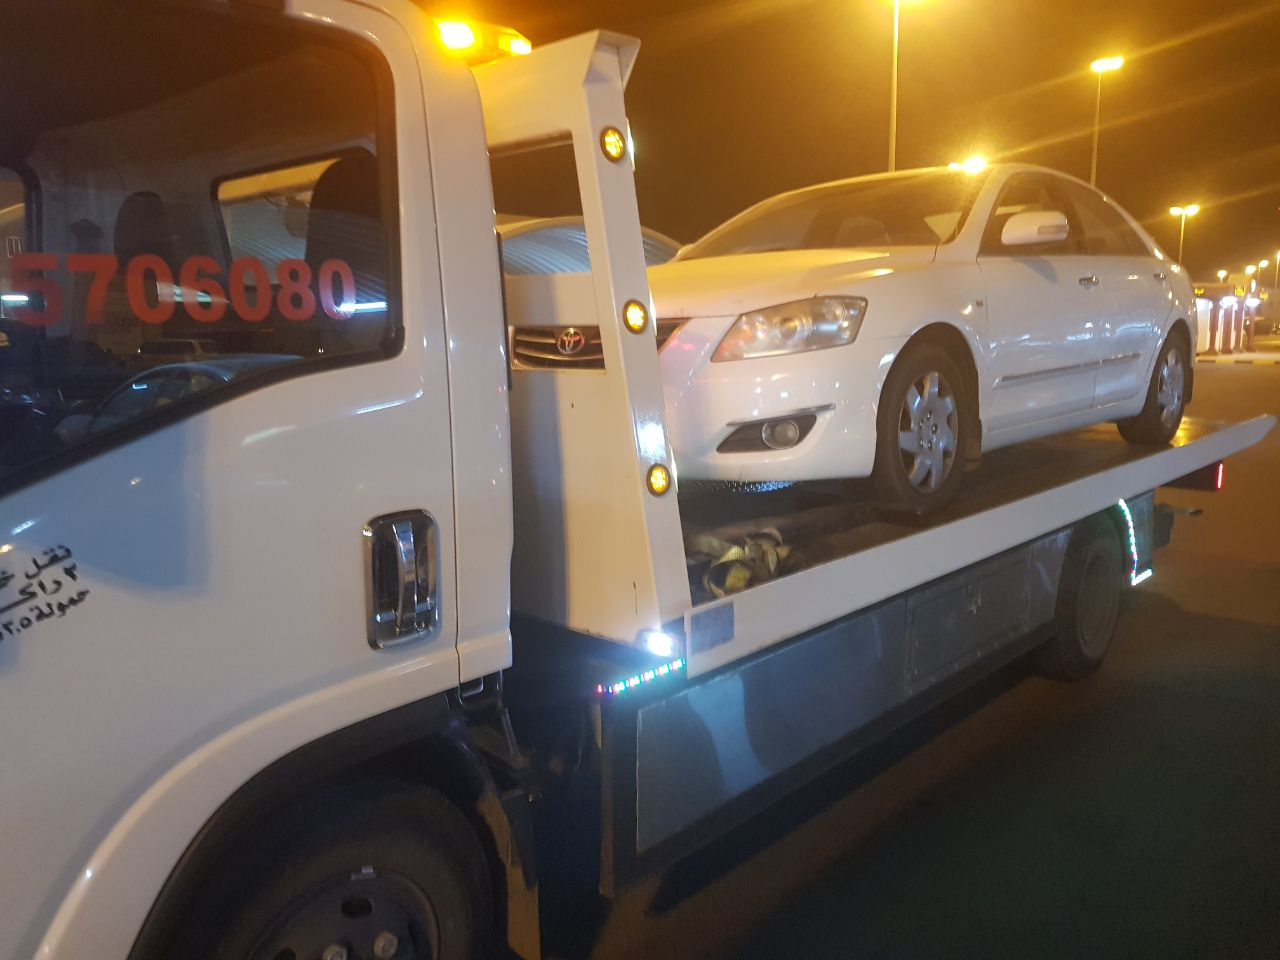 tow truck for night services